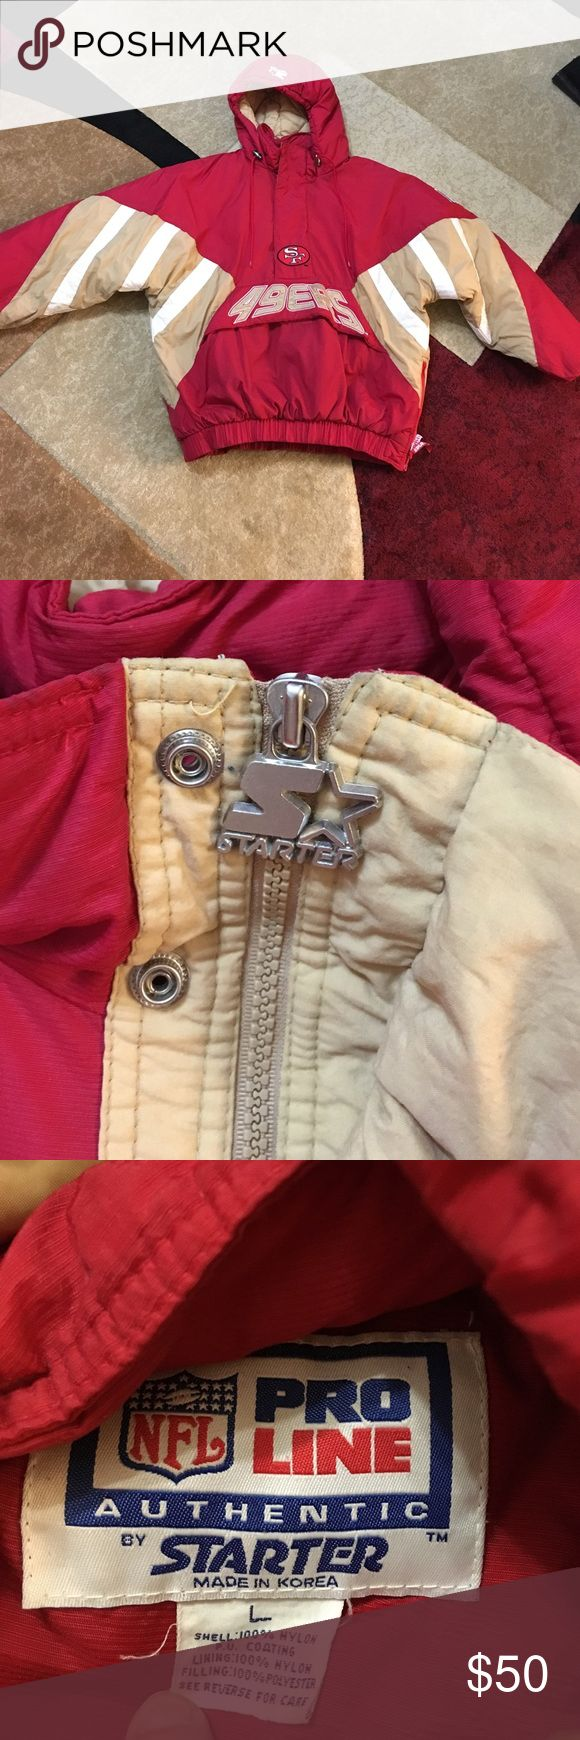 SF 49ers jacket Excellent condition Jackets & Coats Bomber & Varsity